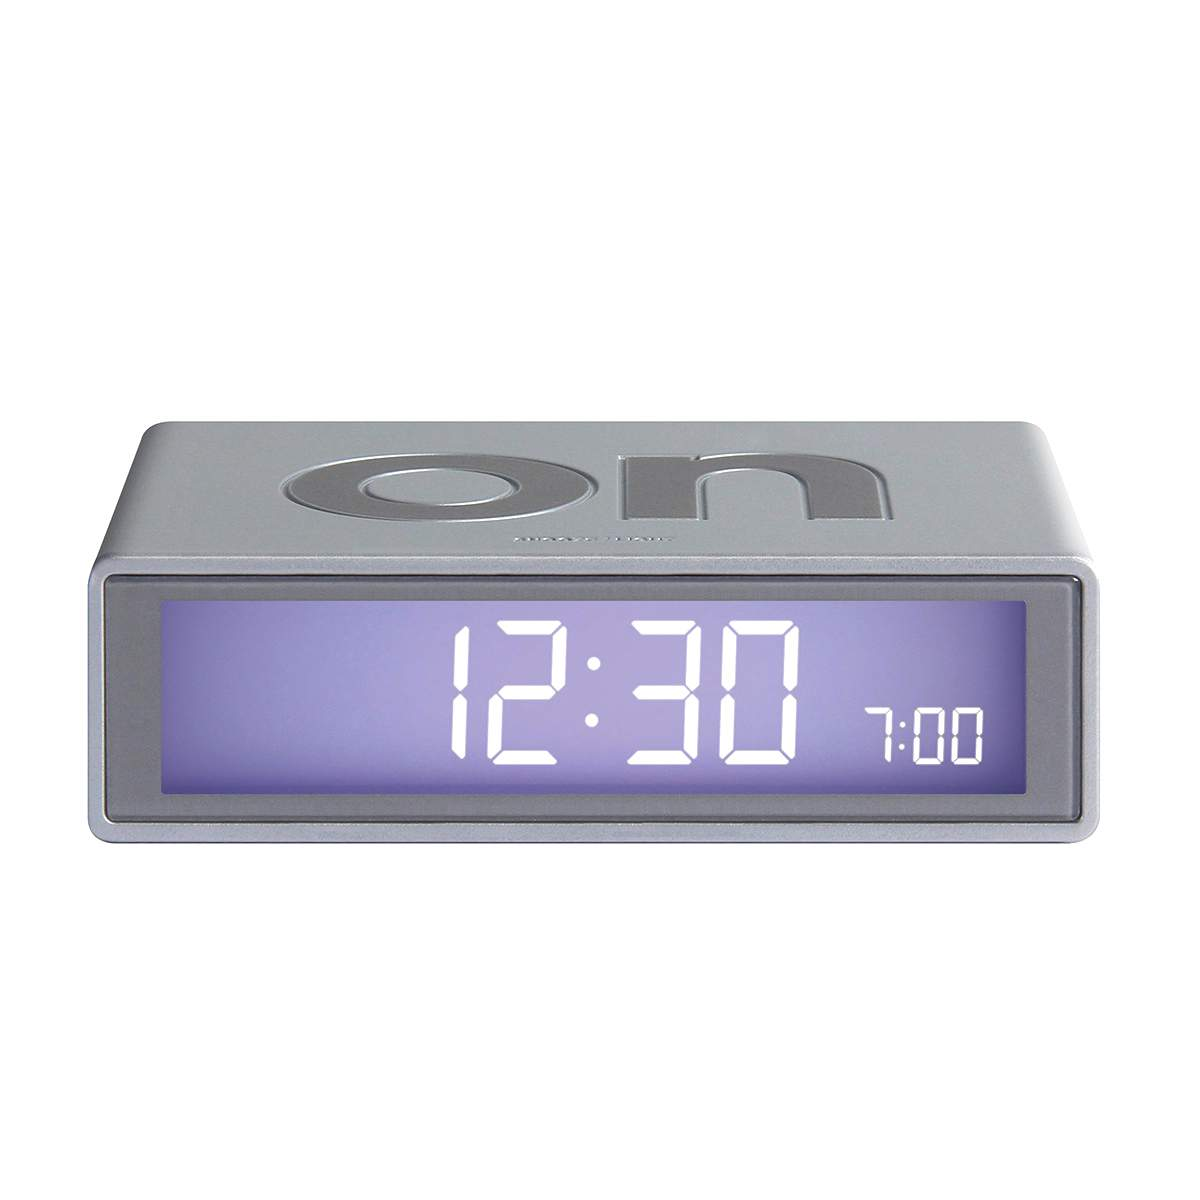 LEXON Flip LCD alarm clock LR130 alu | The Design Gift Shop